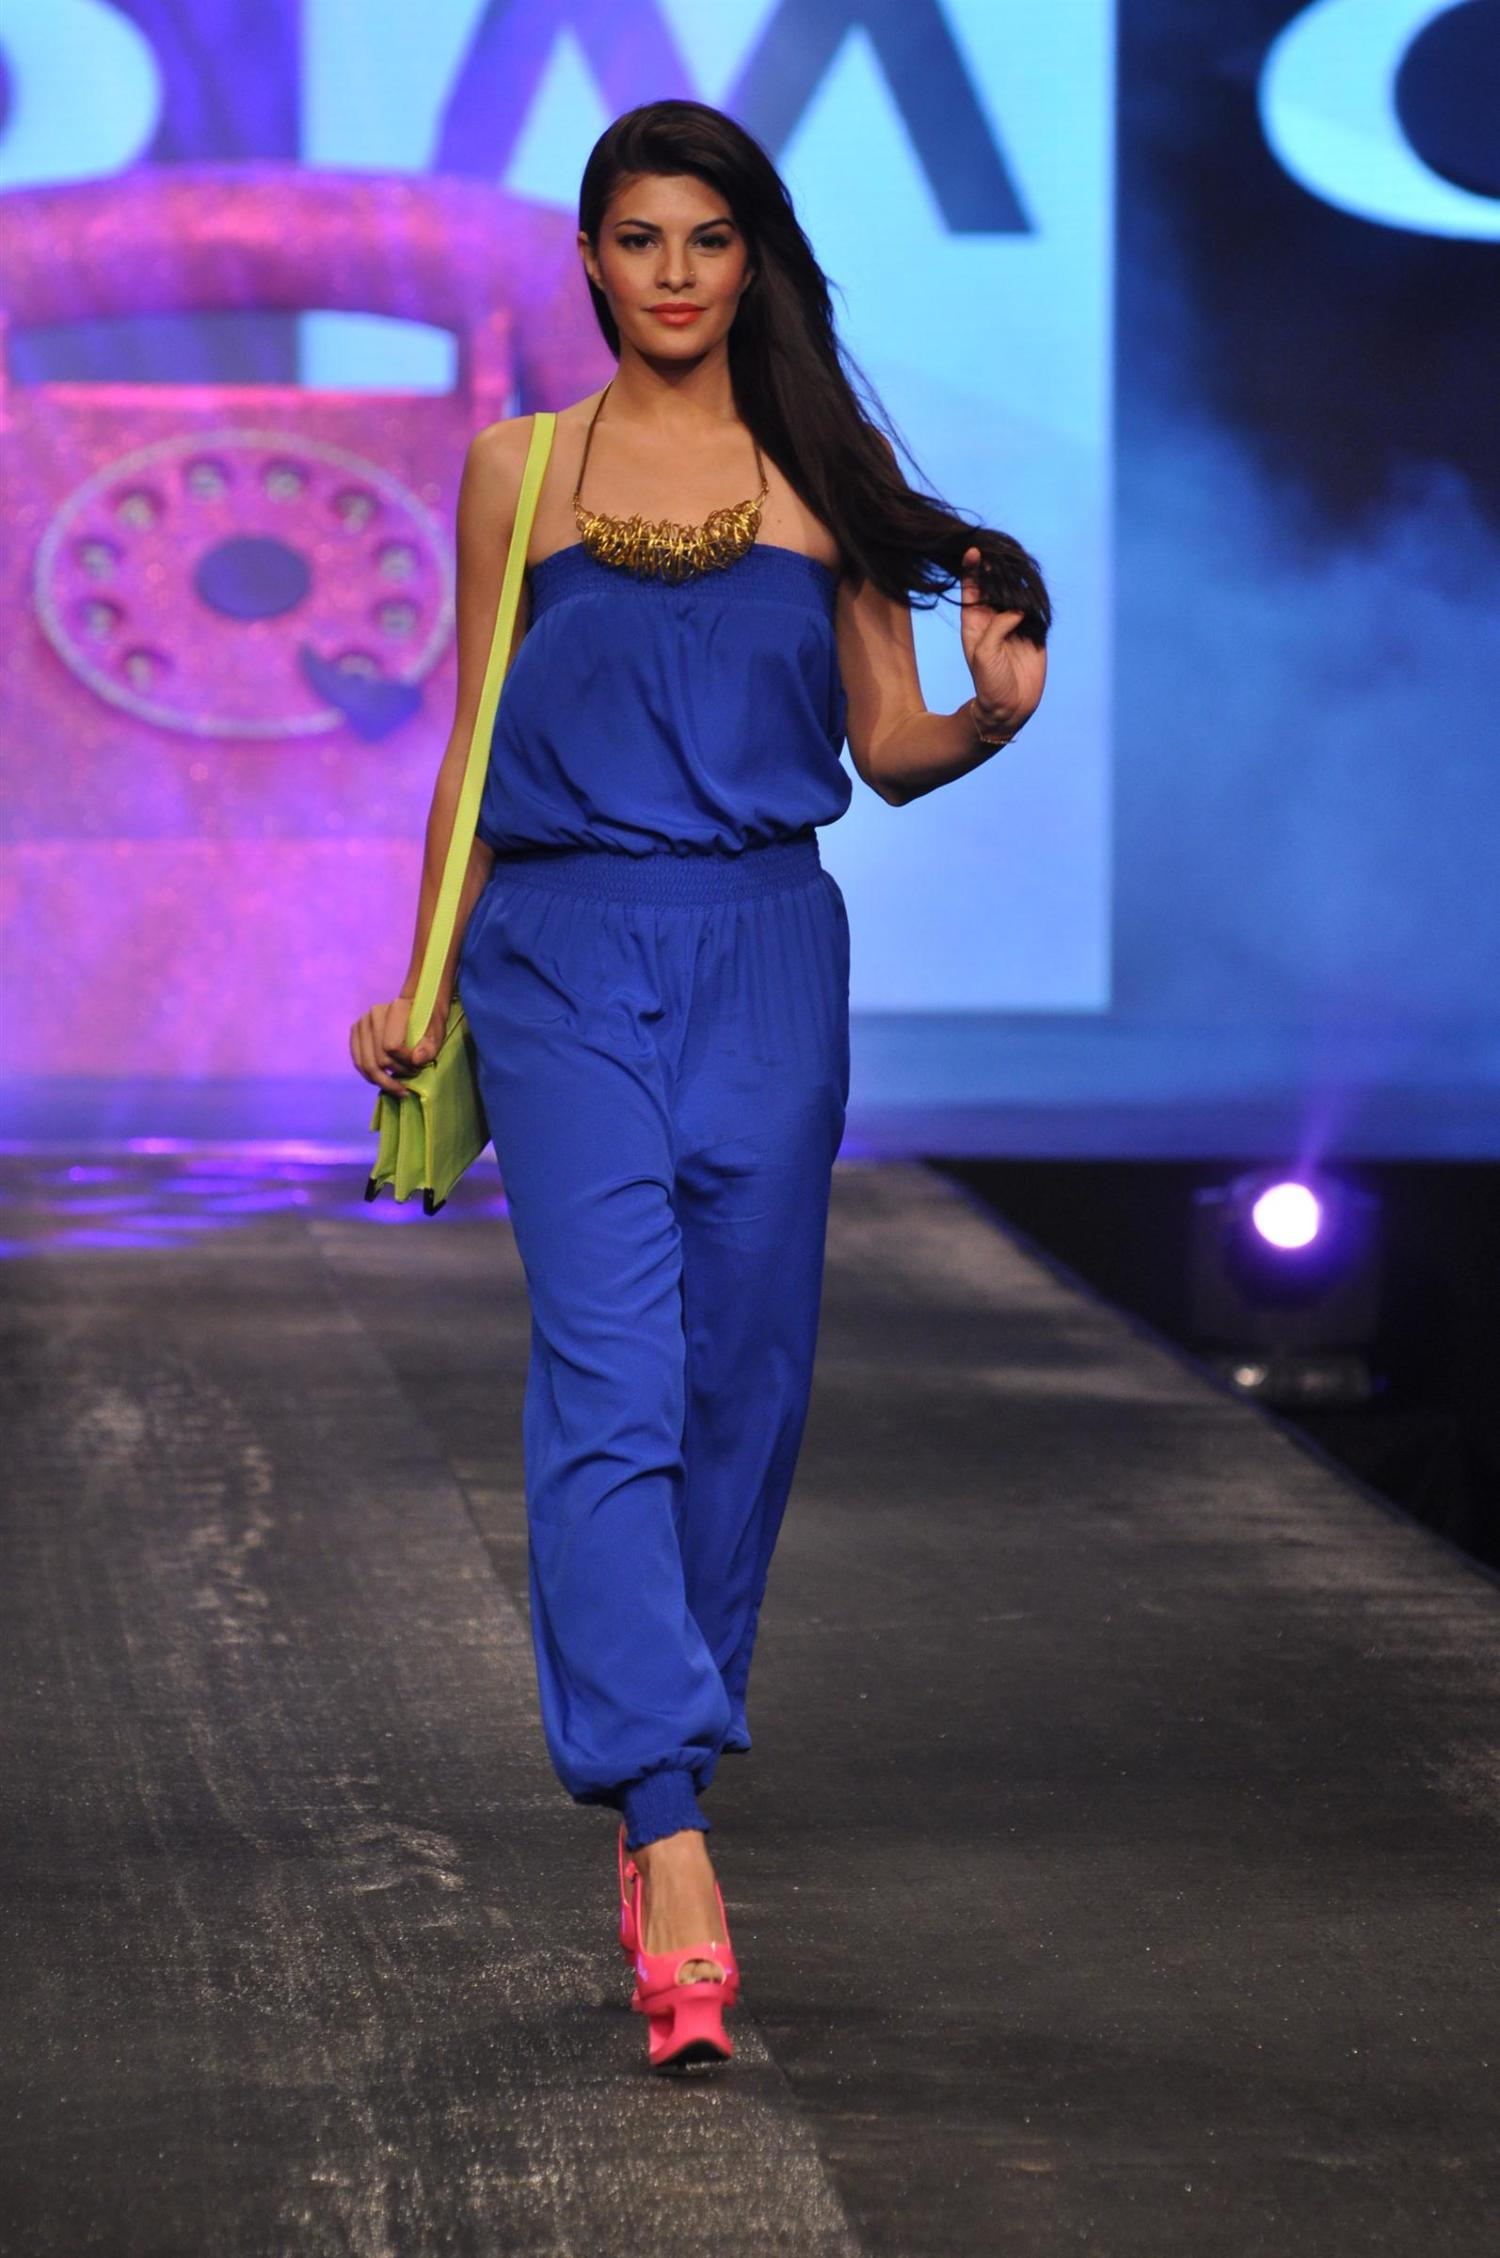 Jacqueline Fernandez walking the ramp at the ALLURE FASHION SHOW in ...